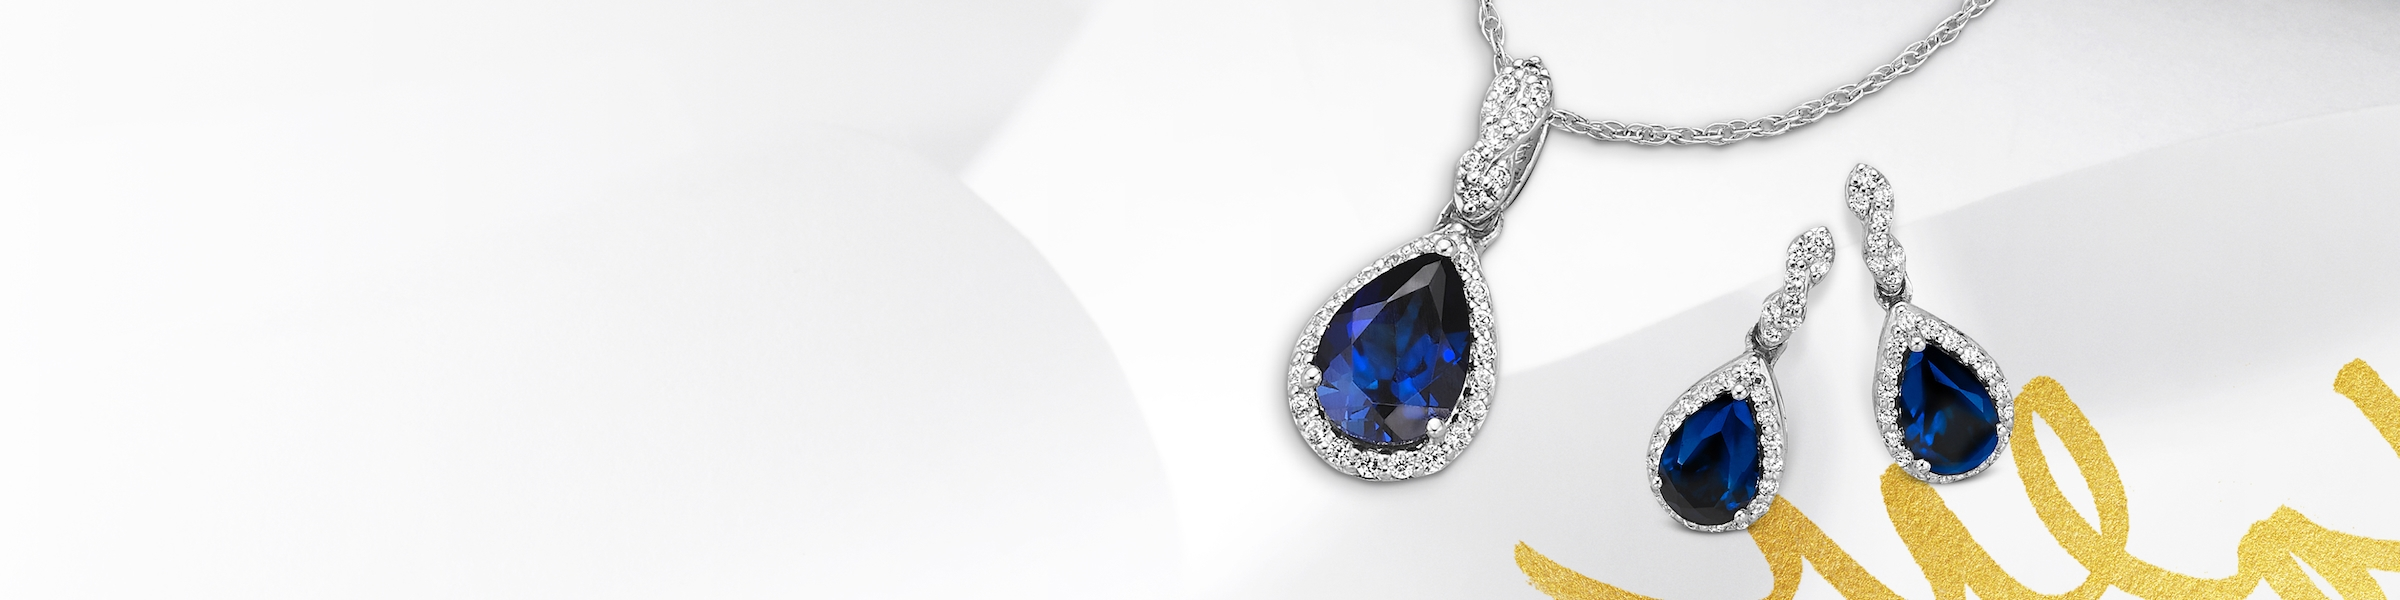 Sapphire earrings and necklace set in white gold. Shop all sapphire jewelry at Jared.